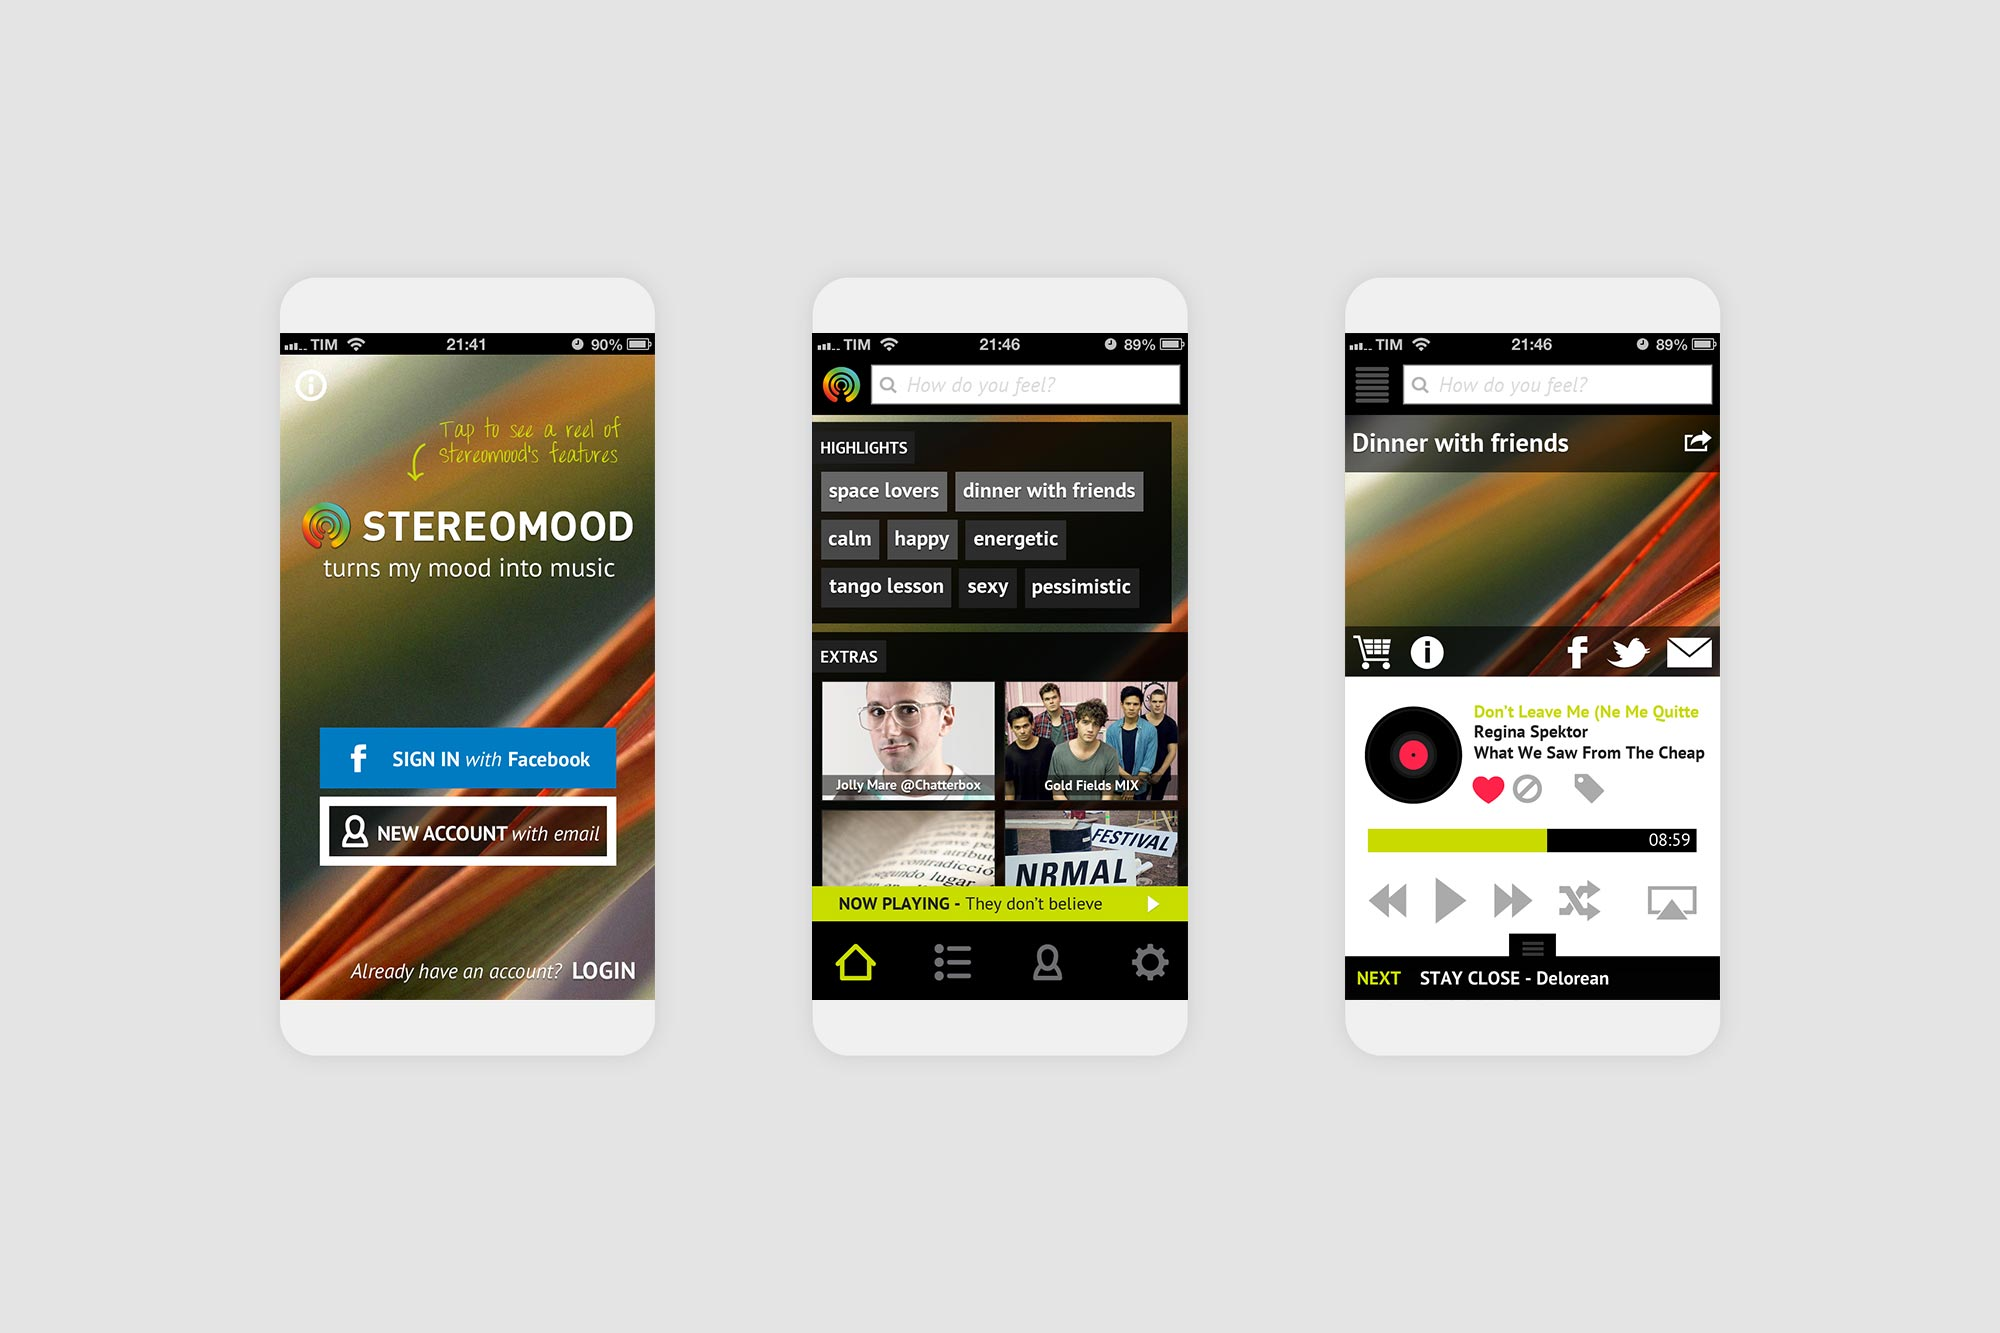 Stereomood mobile up to listen to music by mood on the go